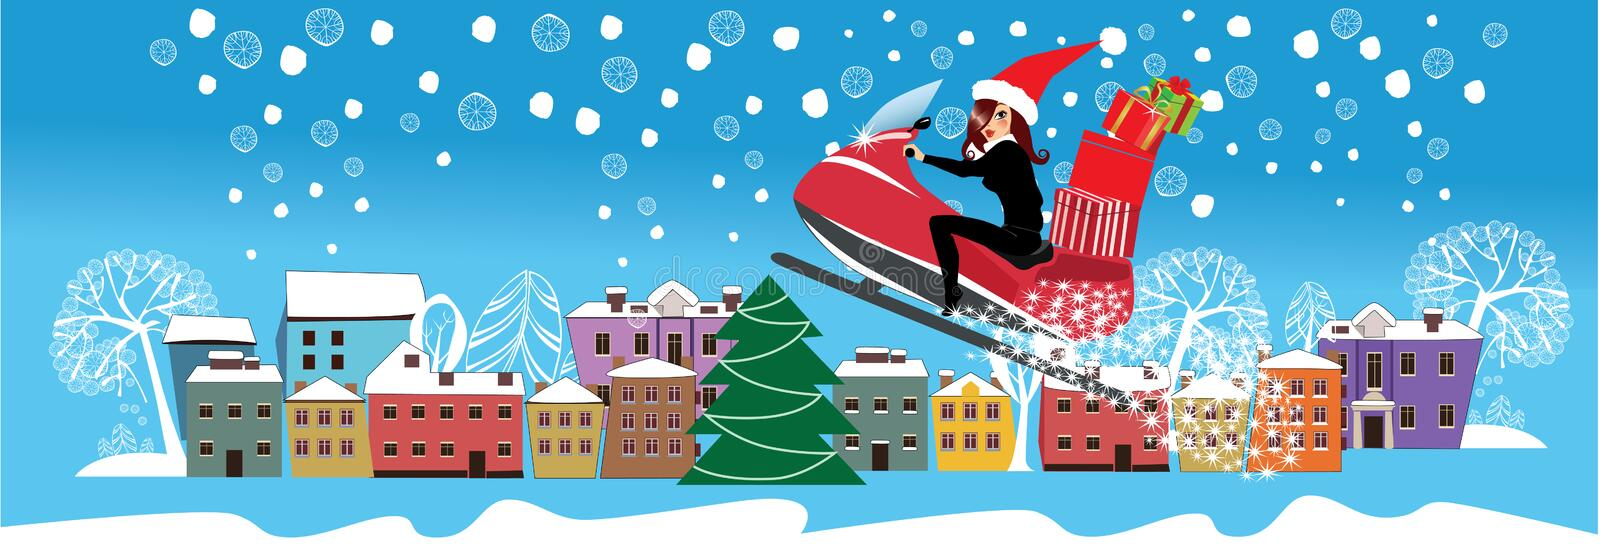 Design of christmas winter city and girl on snowmobile carries gifts, holiday card for promotional materials of Christmas vector illustration